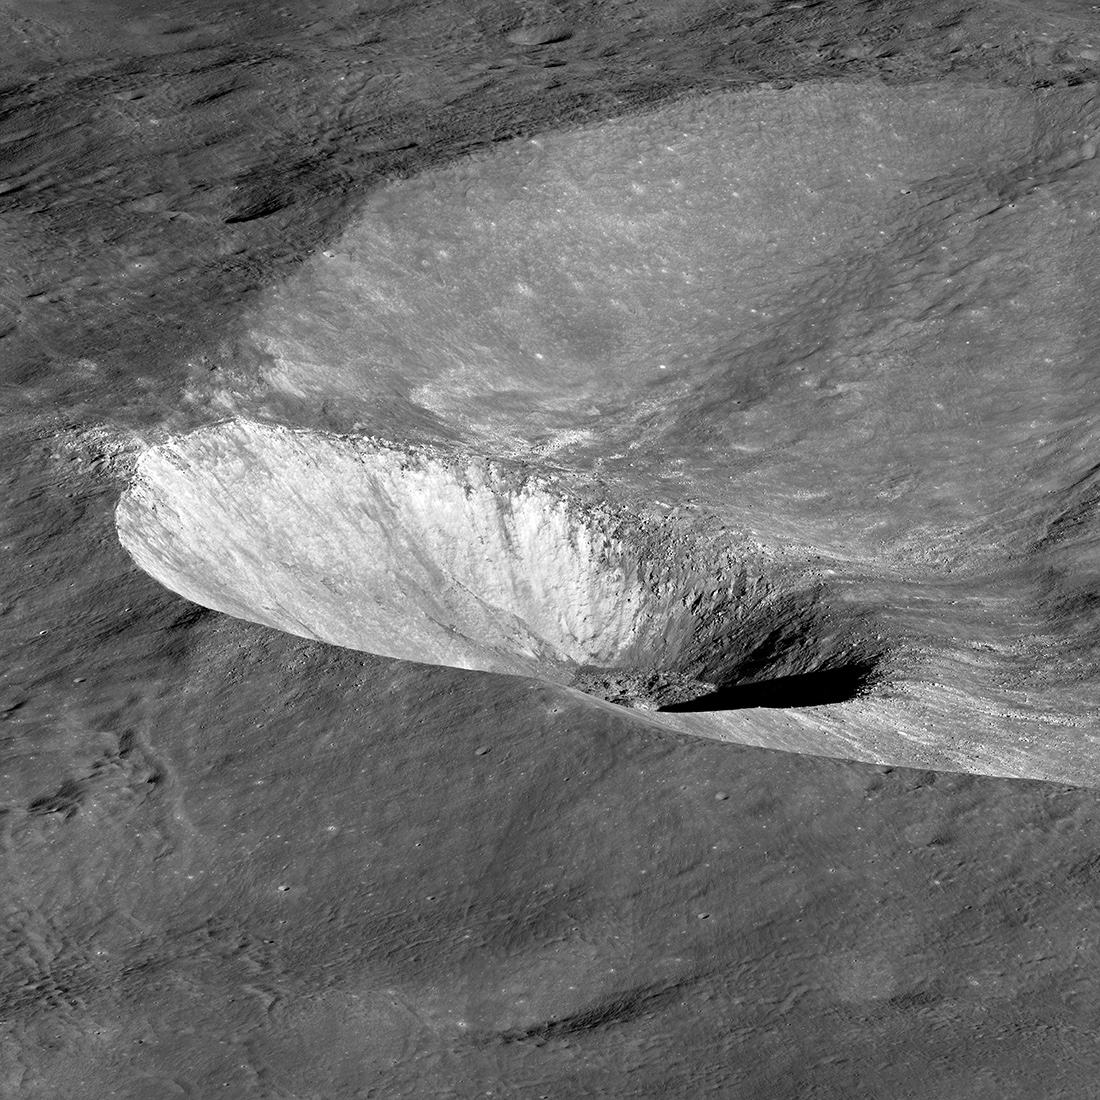 crater within a crater